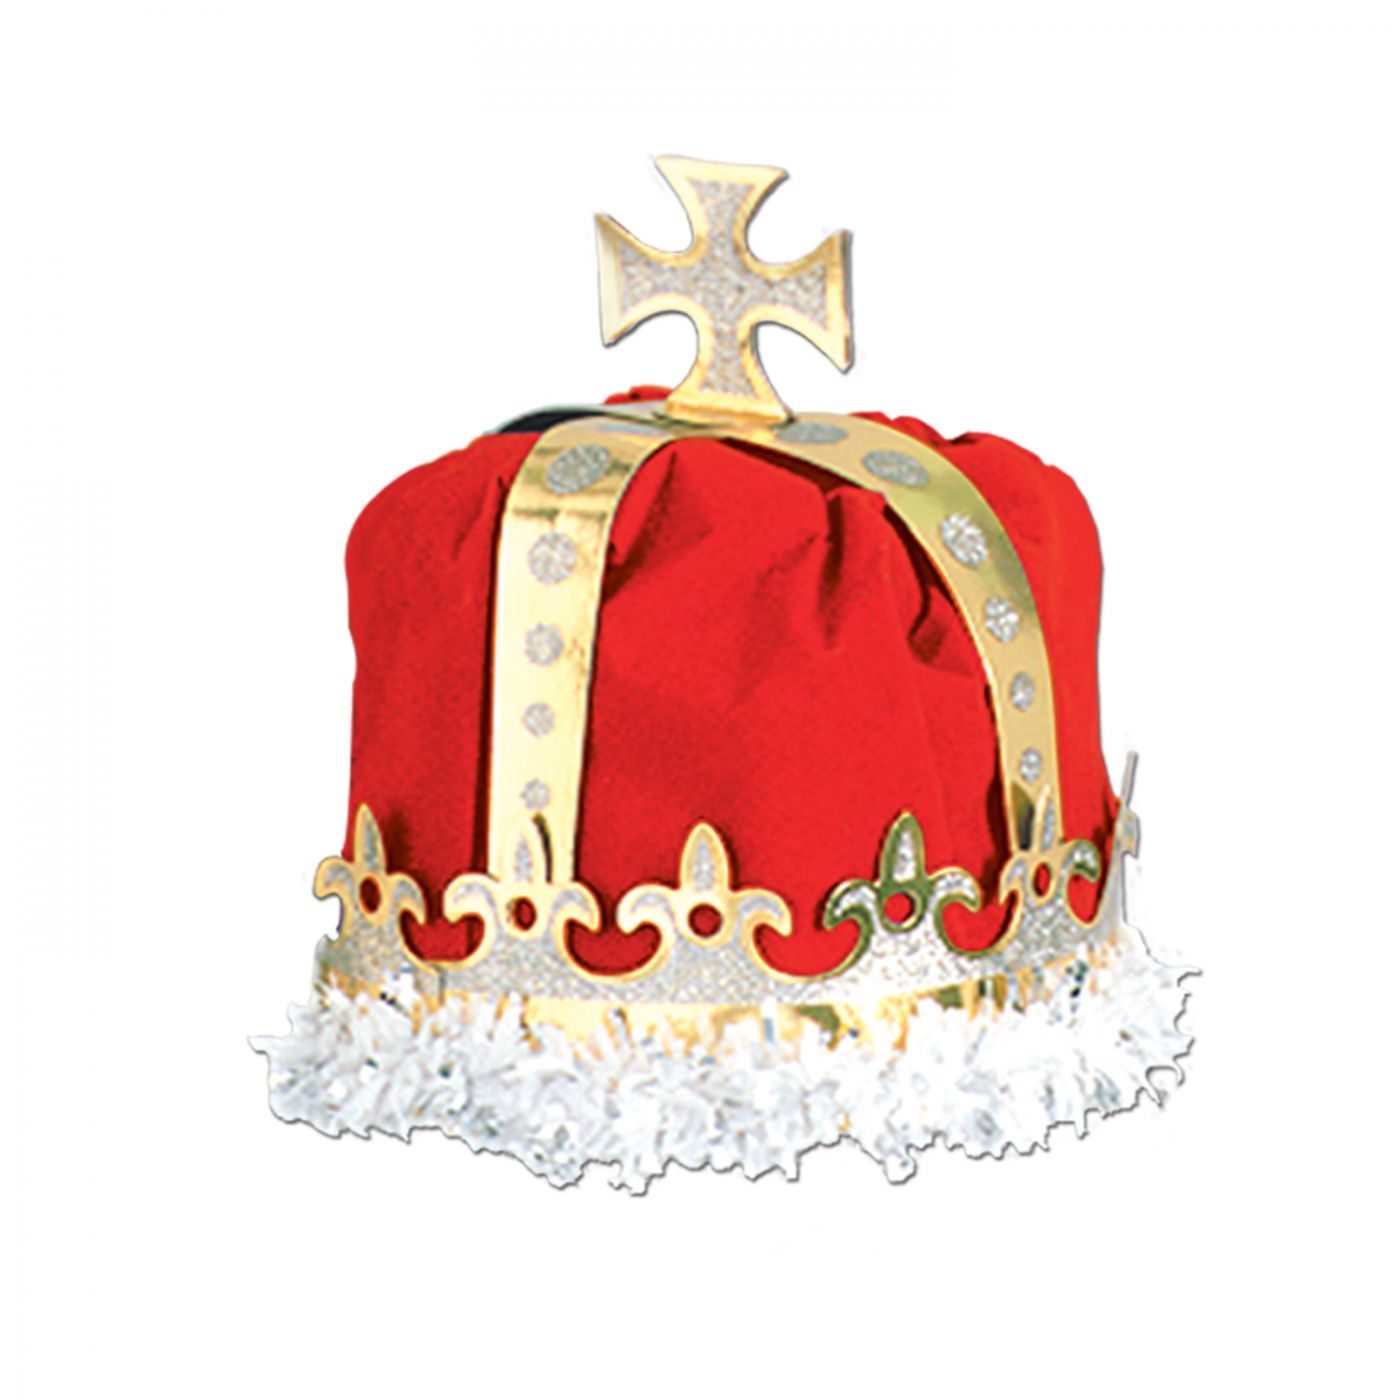 Royal King's Crown image